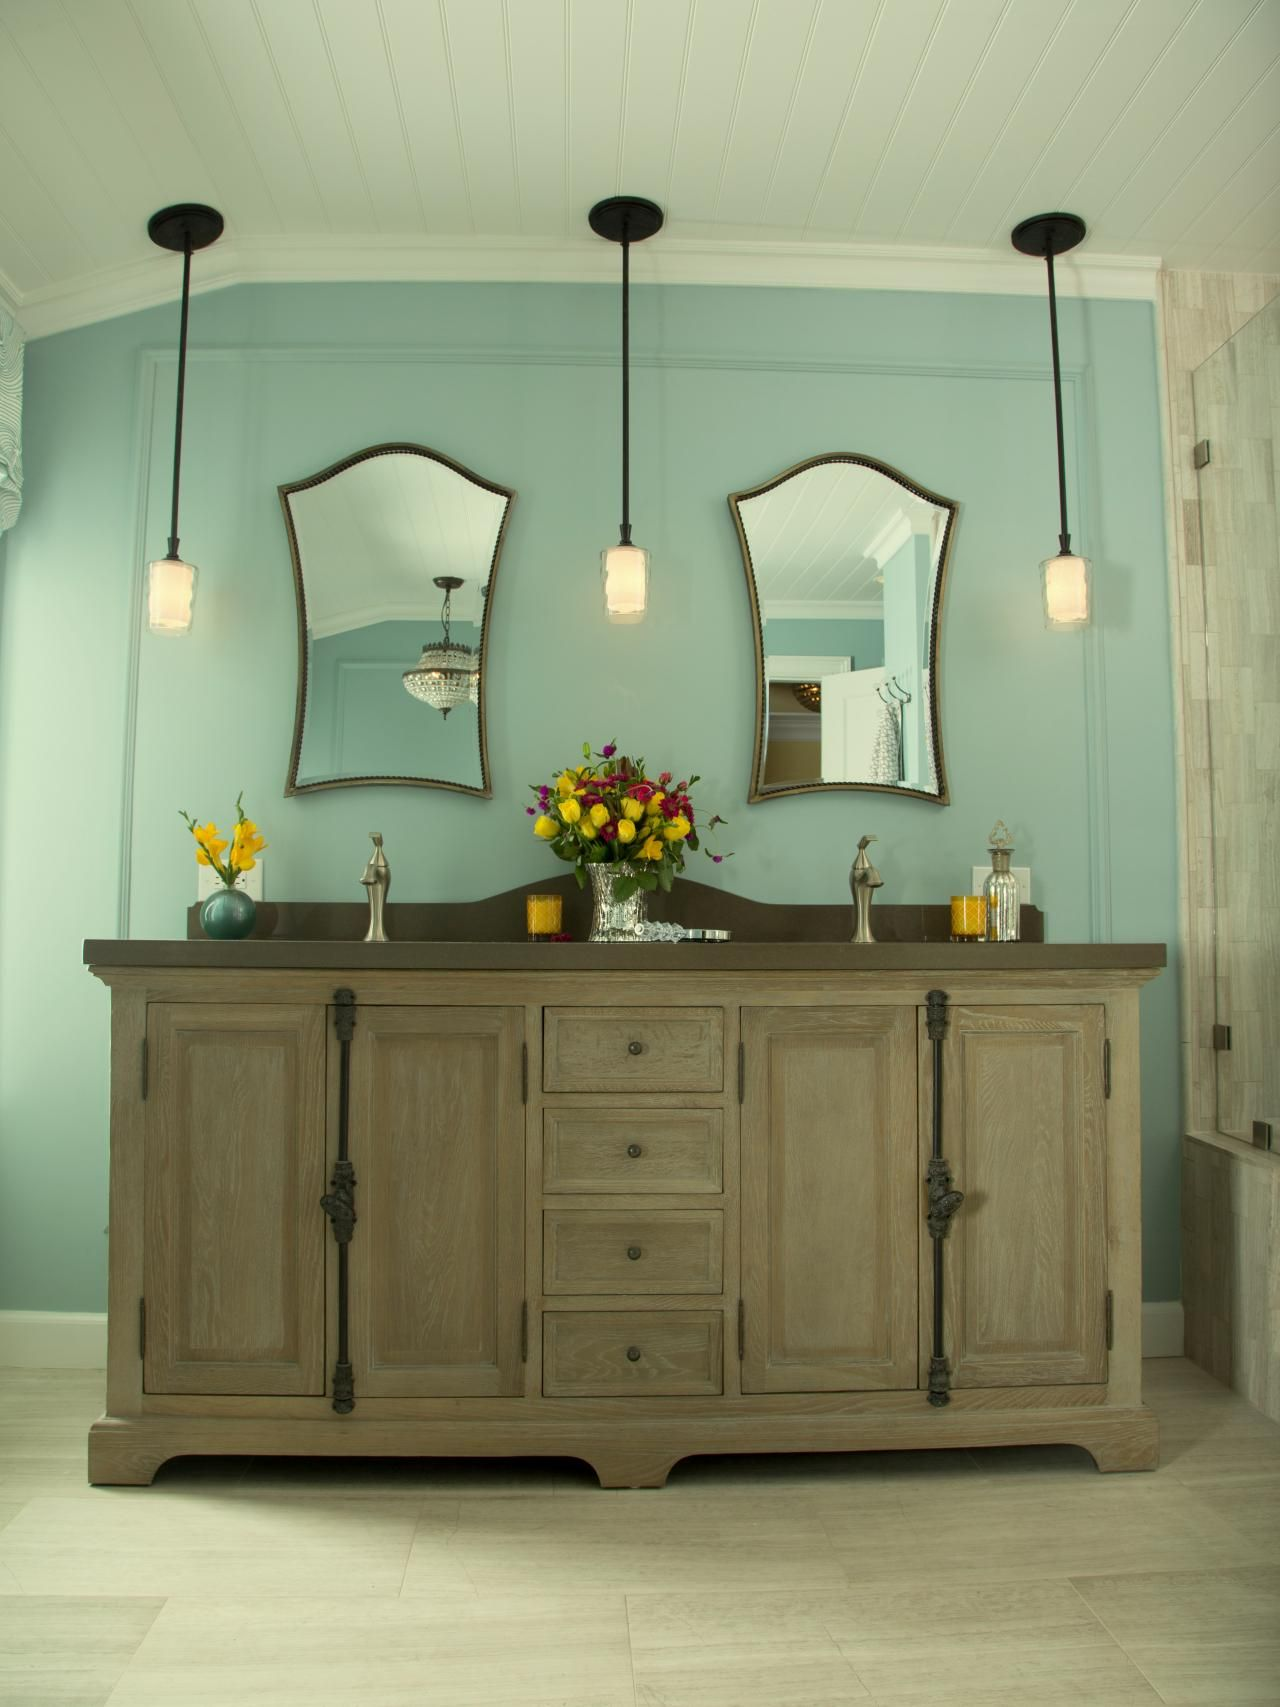 Vintage-style pendants, a beadboard ceiling and a weathered ...